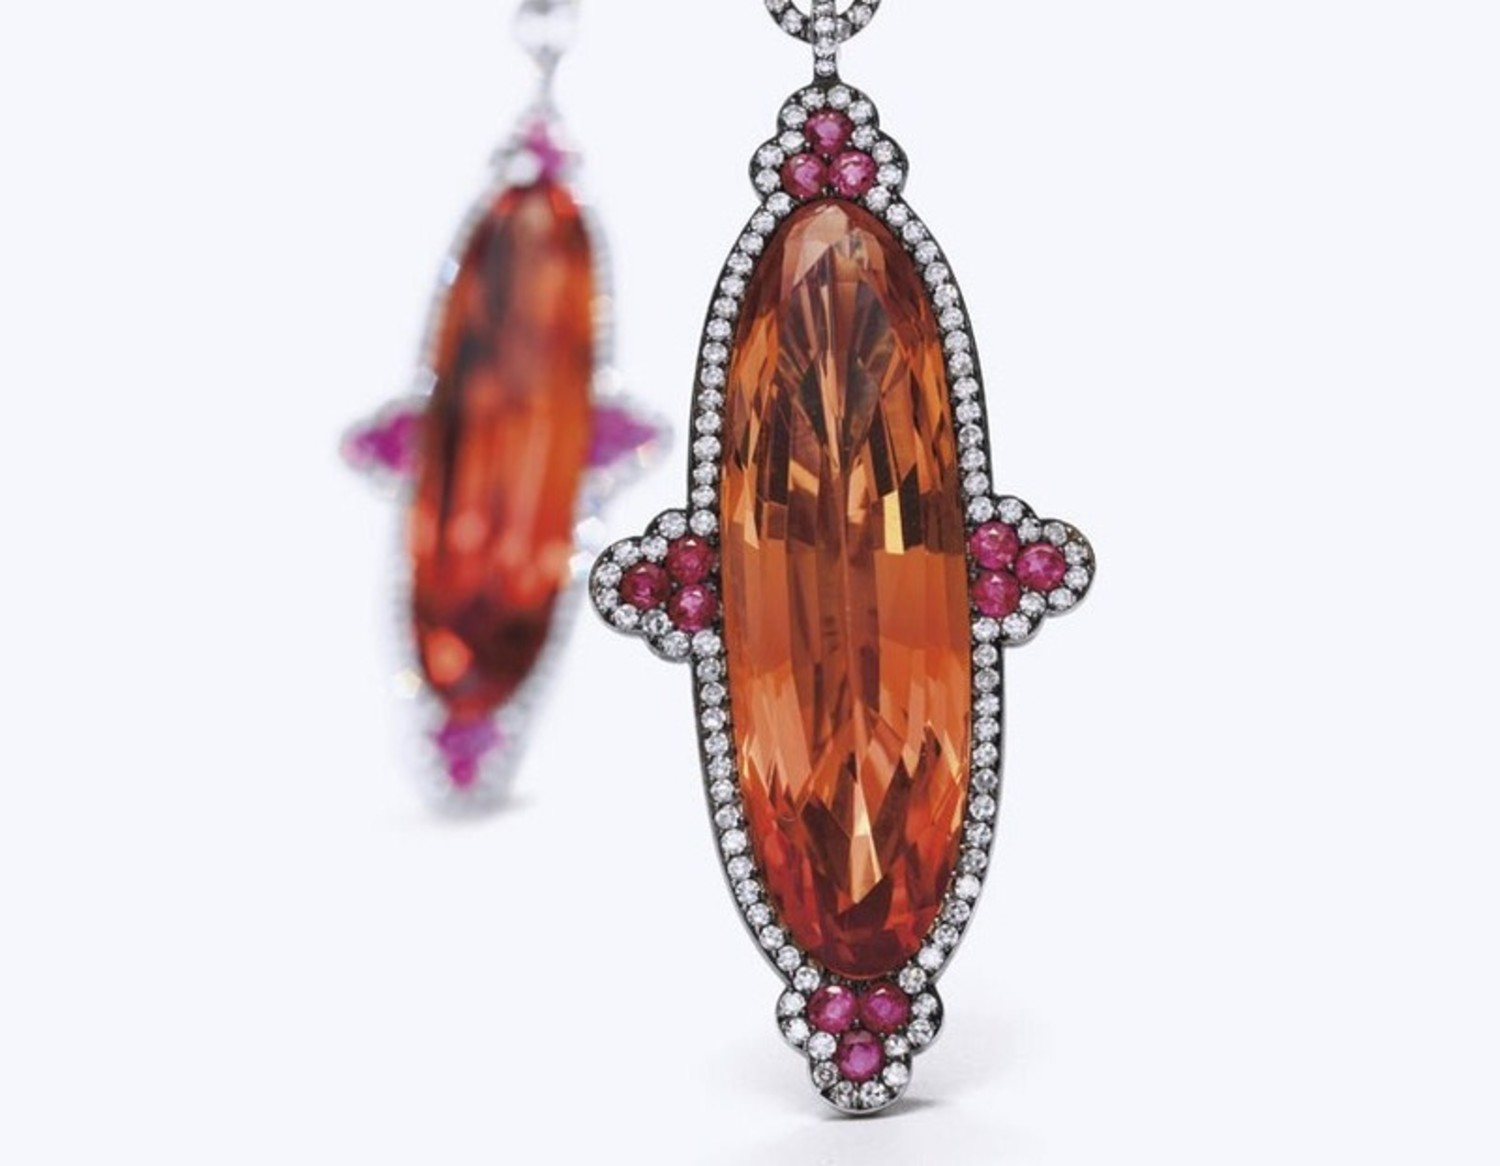 JAR earrings with imperial topaz, sapphires and diamonds sold at Christie